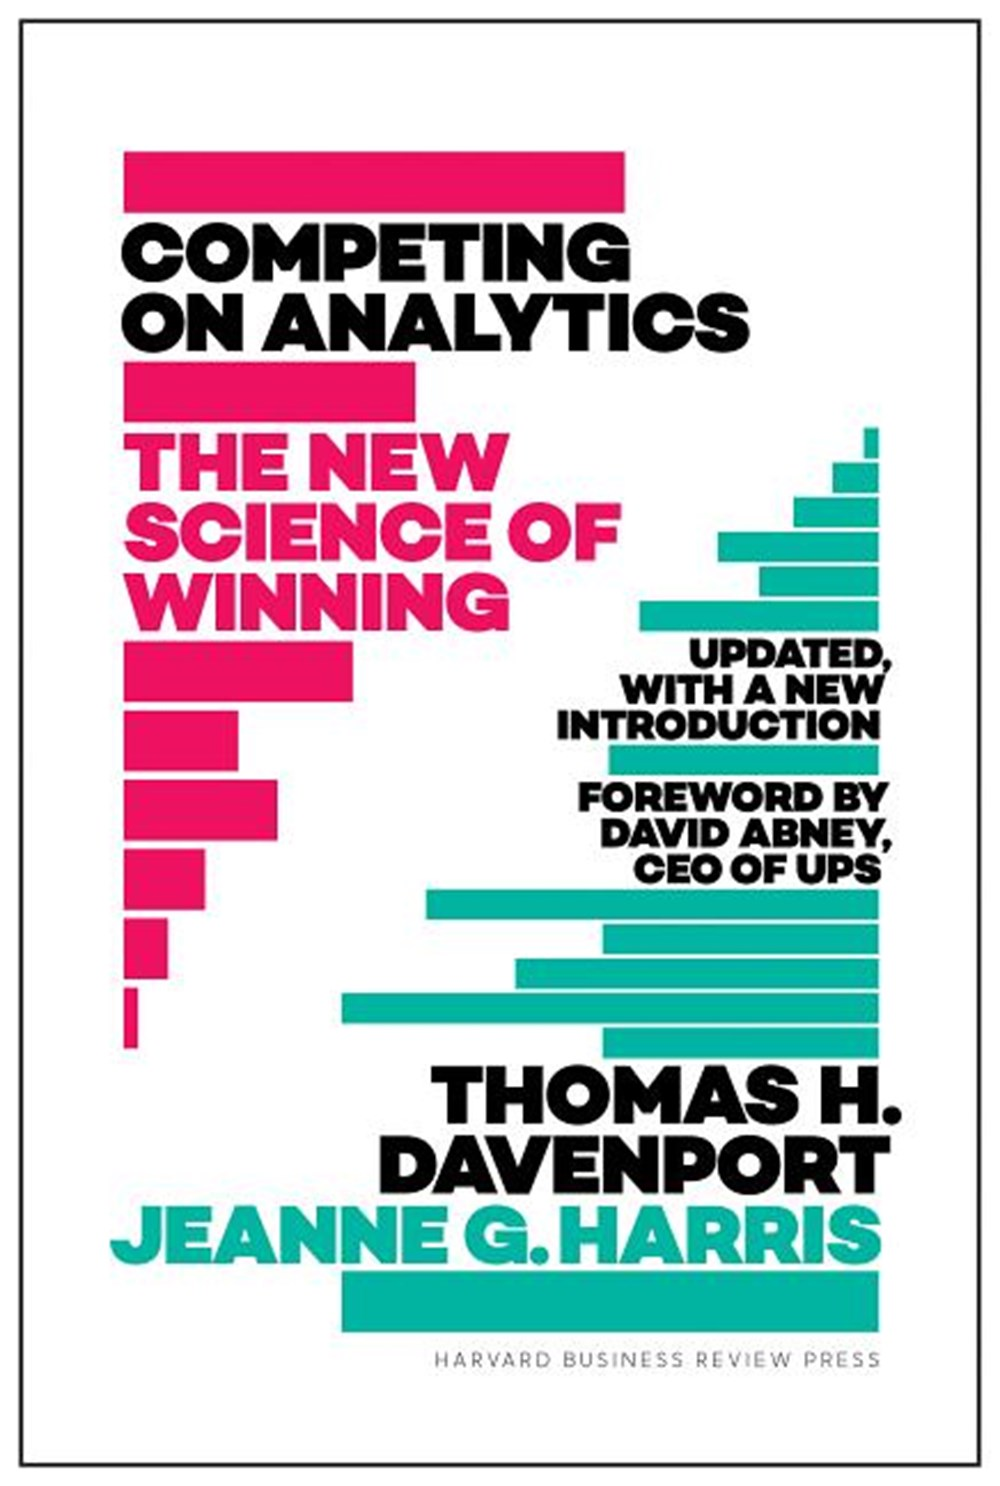 Competing on Analytics Updated, with a New Introduction: The New Science of Winning (Revised)